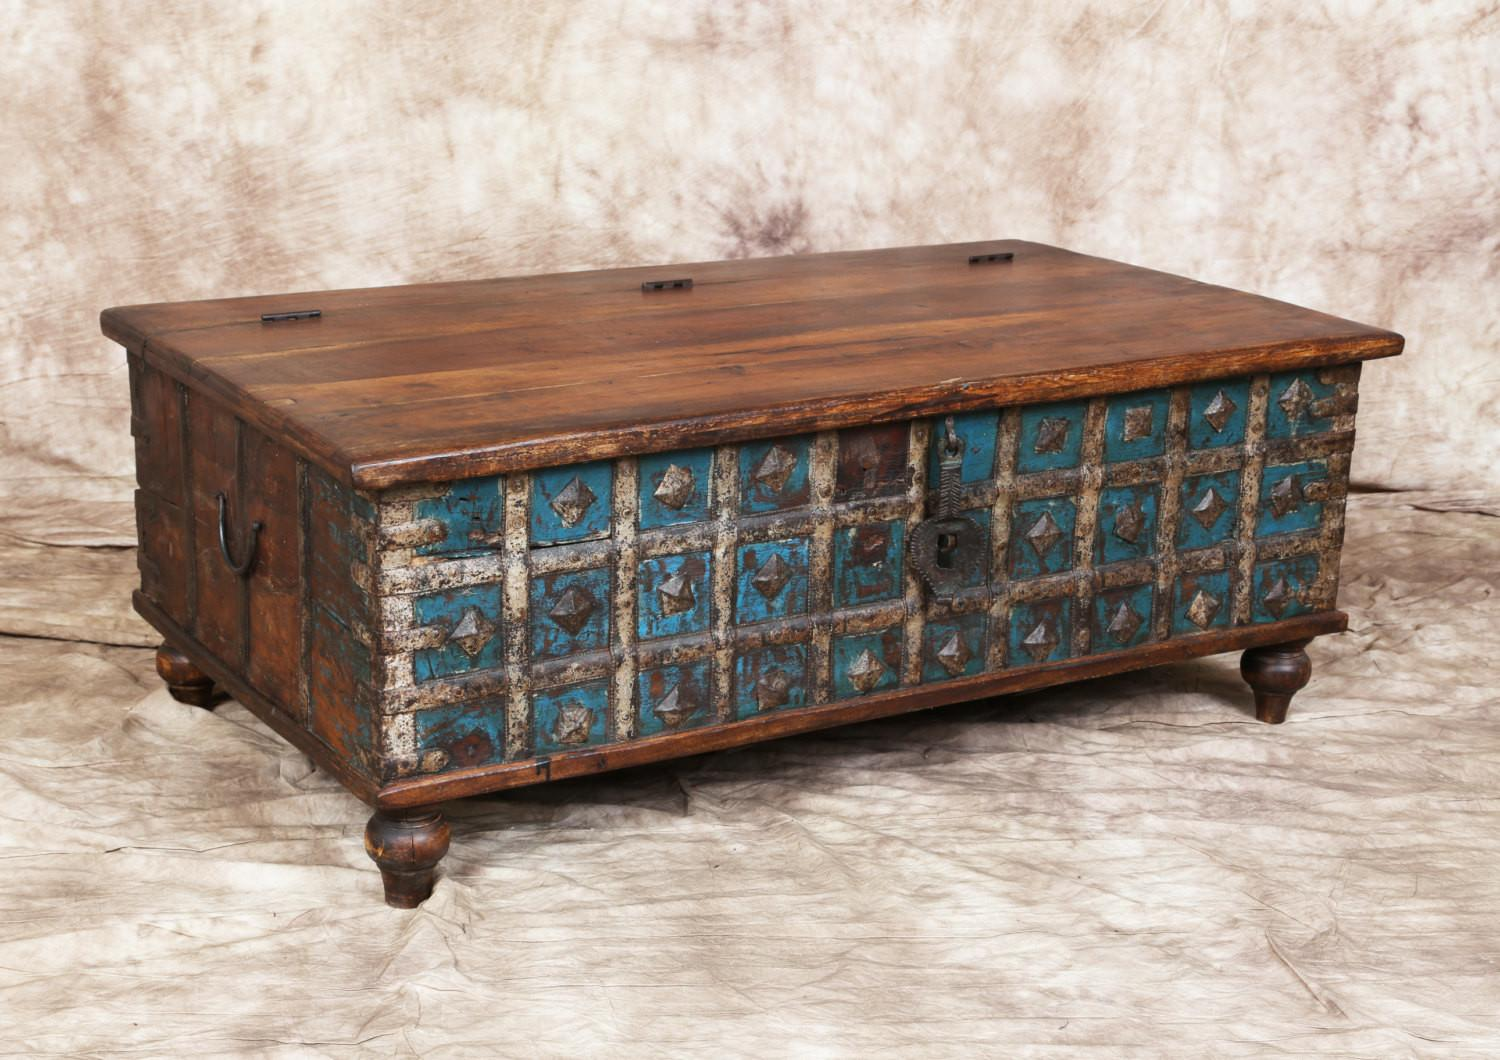 Antique Blue Cream Indian Trunk Coffee Table Metal Latch